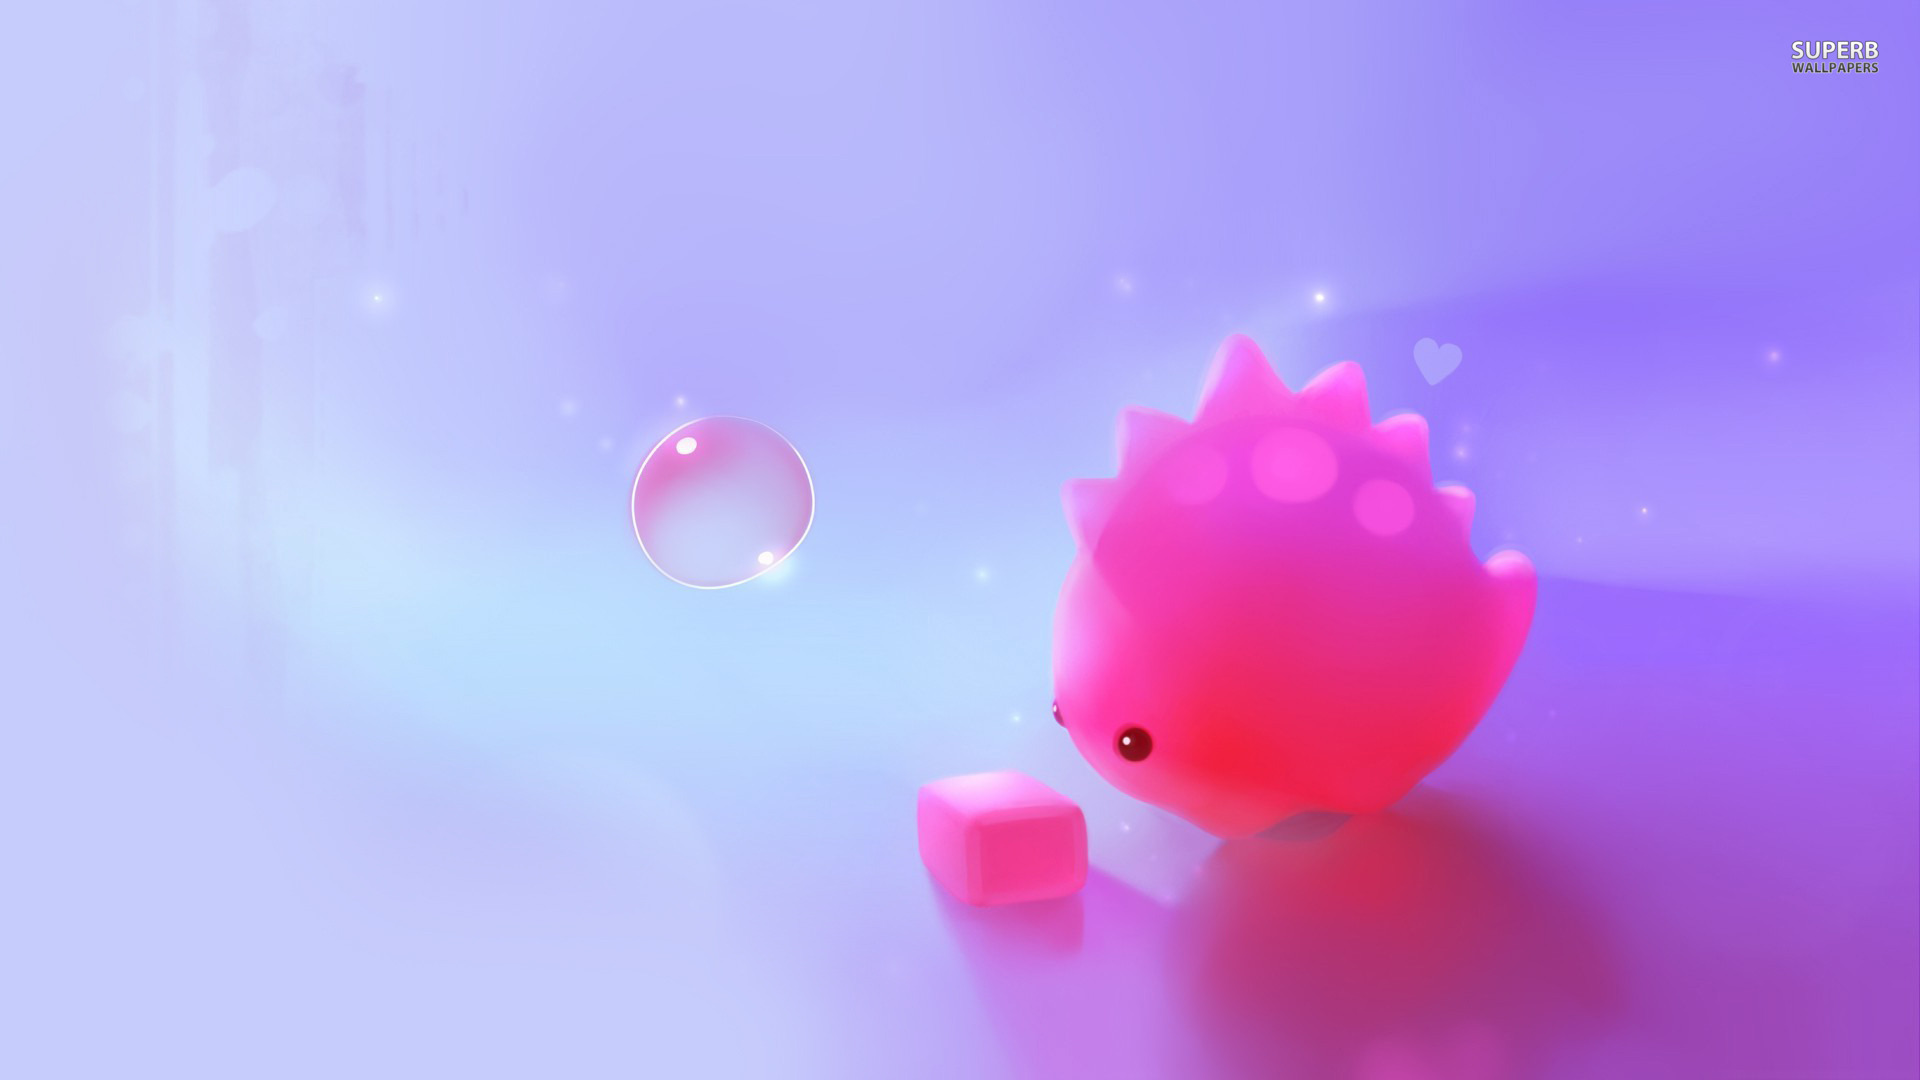 Cute Pink Dino Wallpaper   MixHD wallpapers 1920x1080